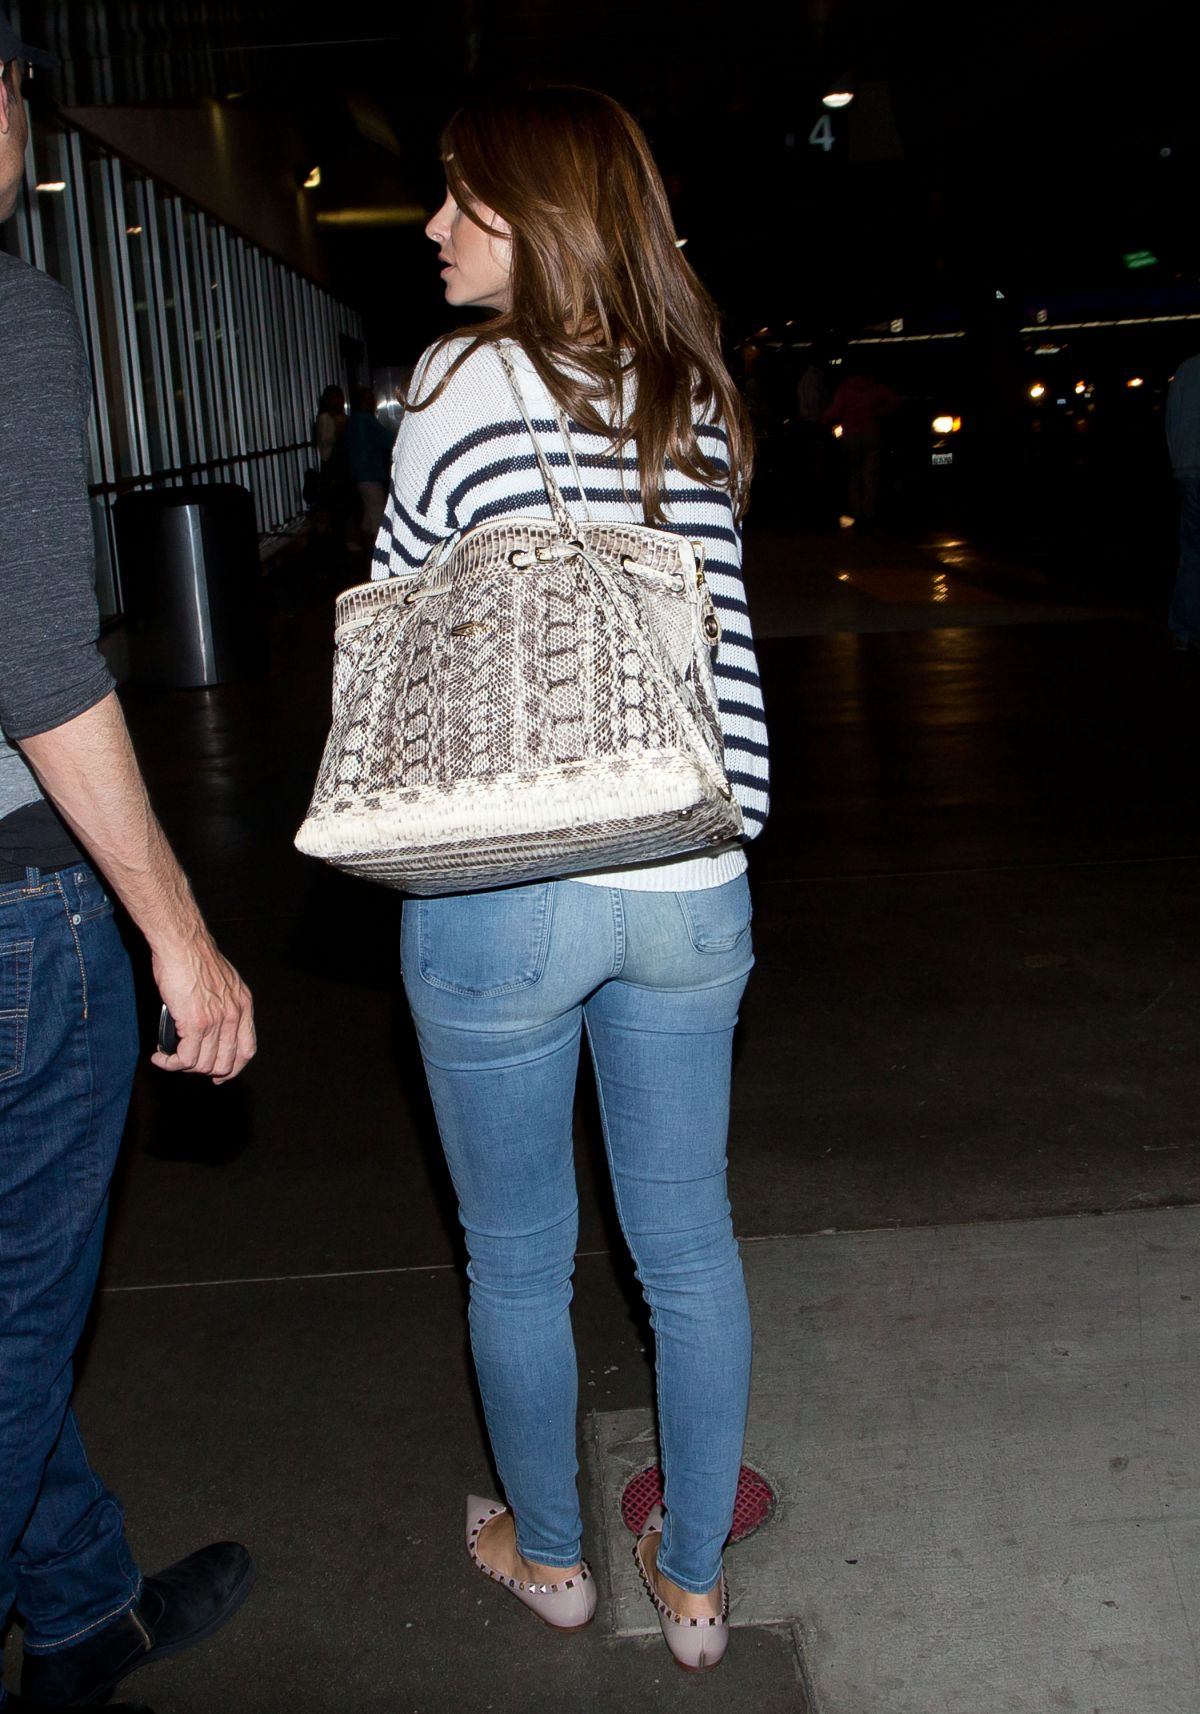 Aas Girl Wallpaper Maria Menounos In Jeans At Lax Airport Hawtcelebs